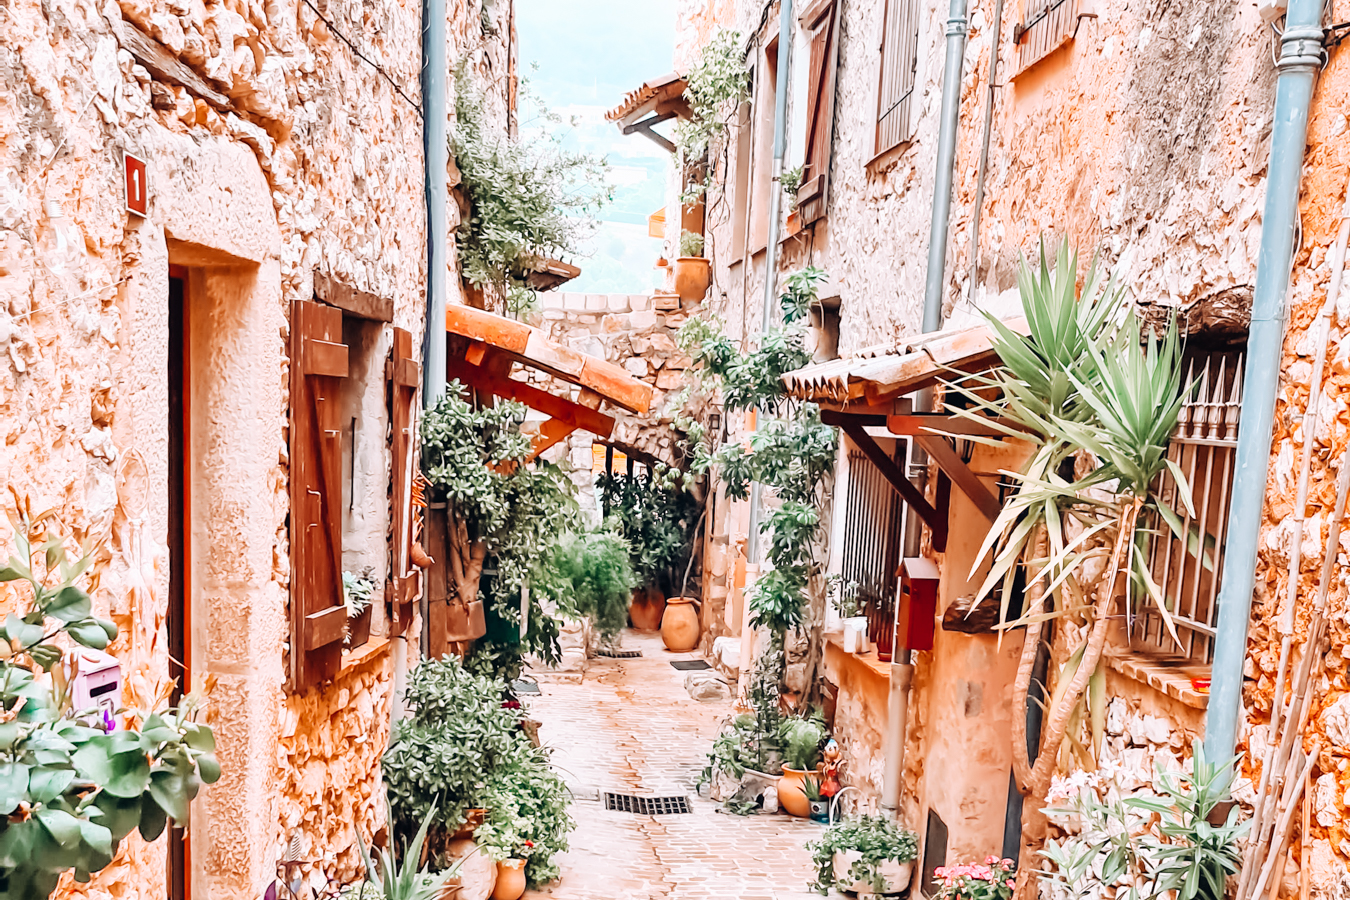 Street in Tourrettes-sur-Loup in France